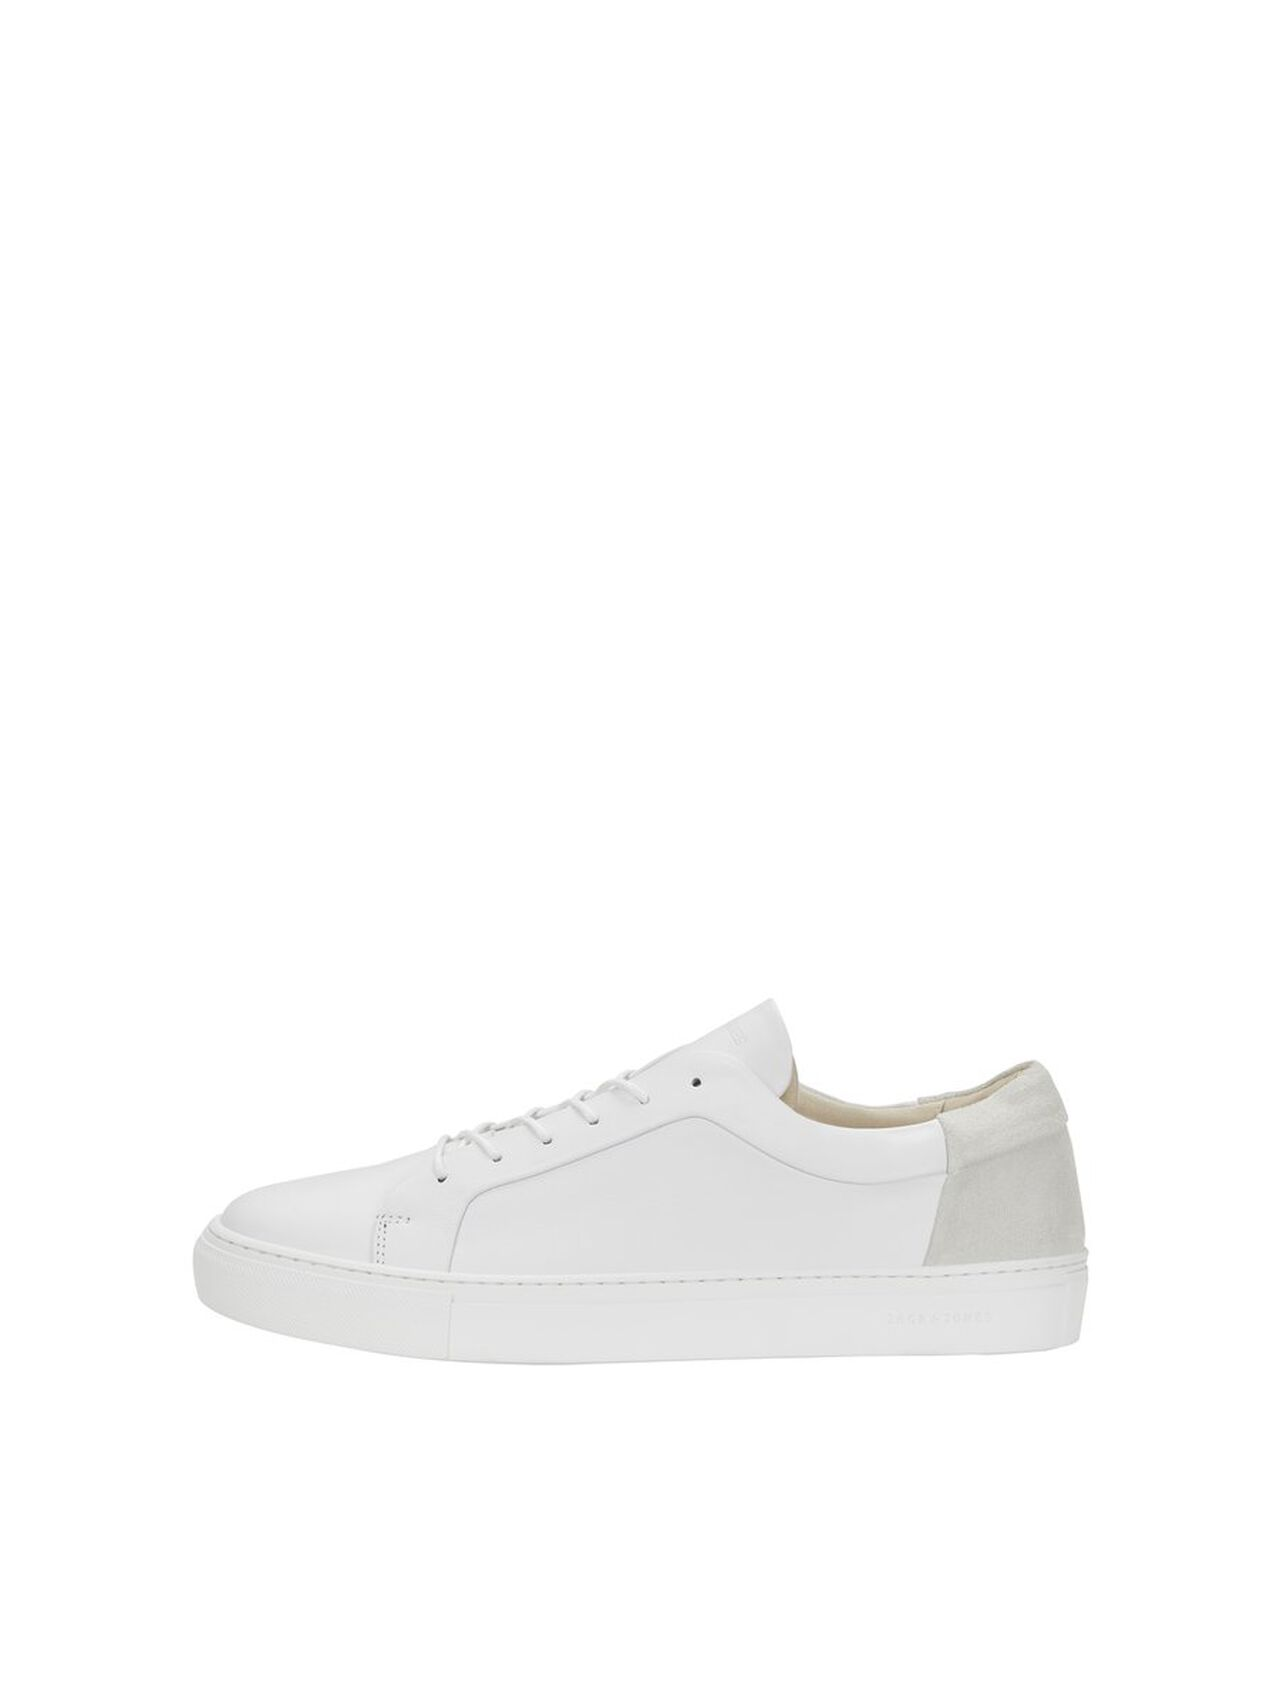 JACK & JONES Leather Sneakers Men White